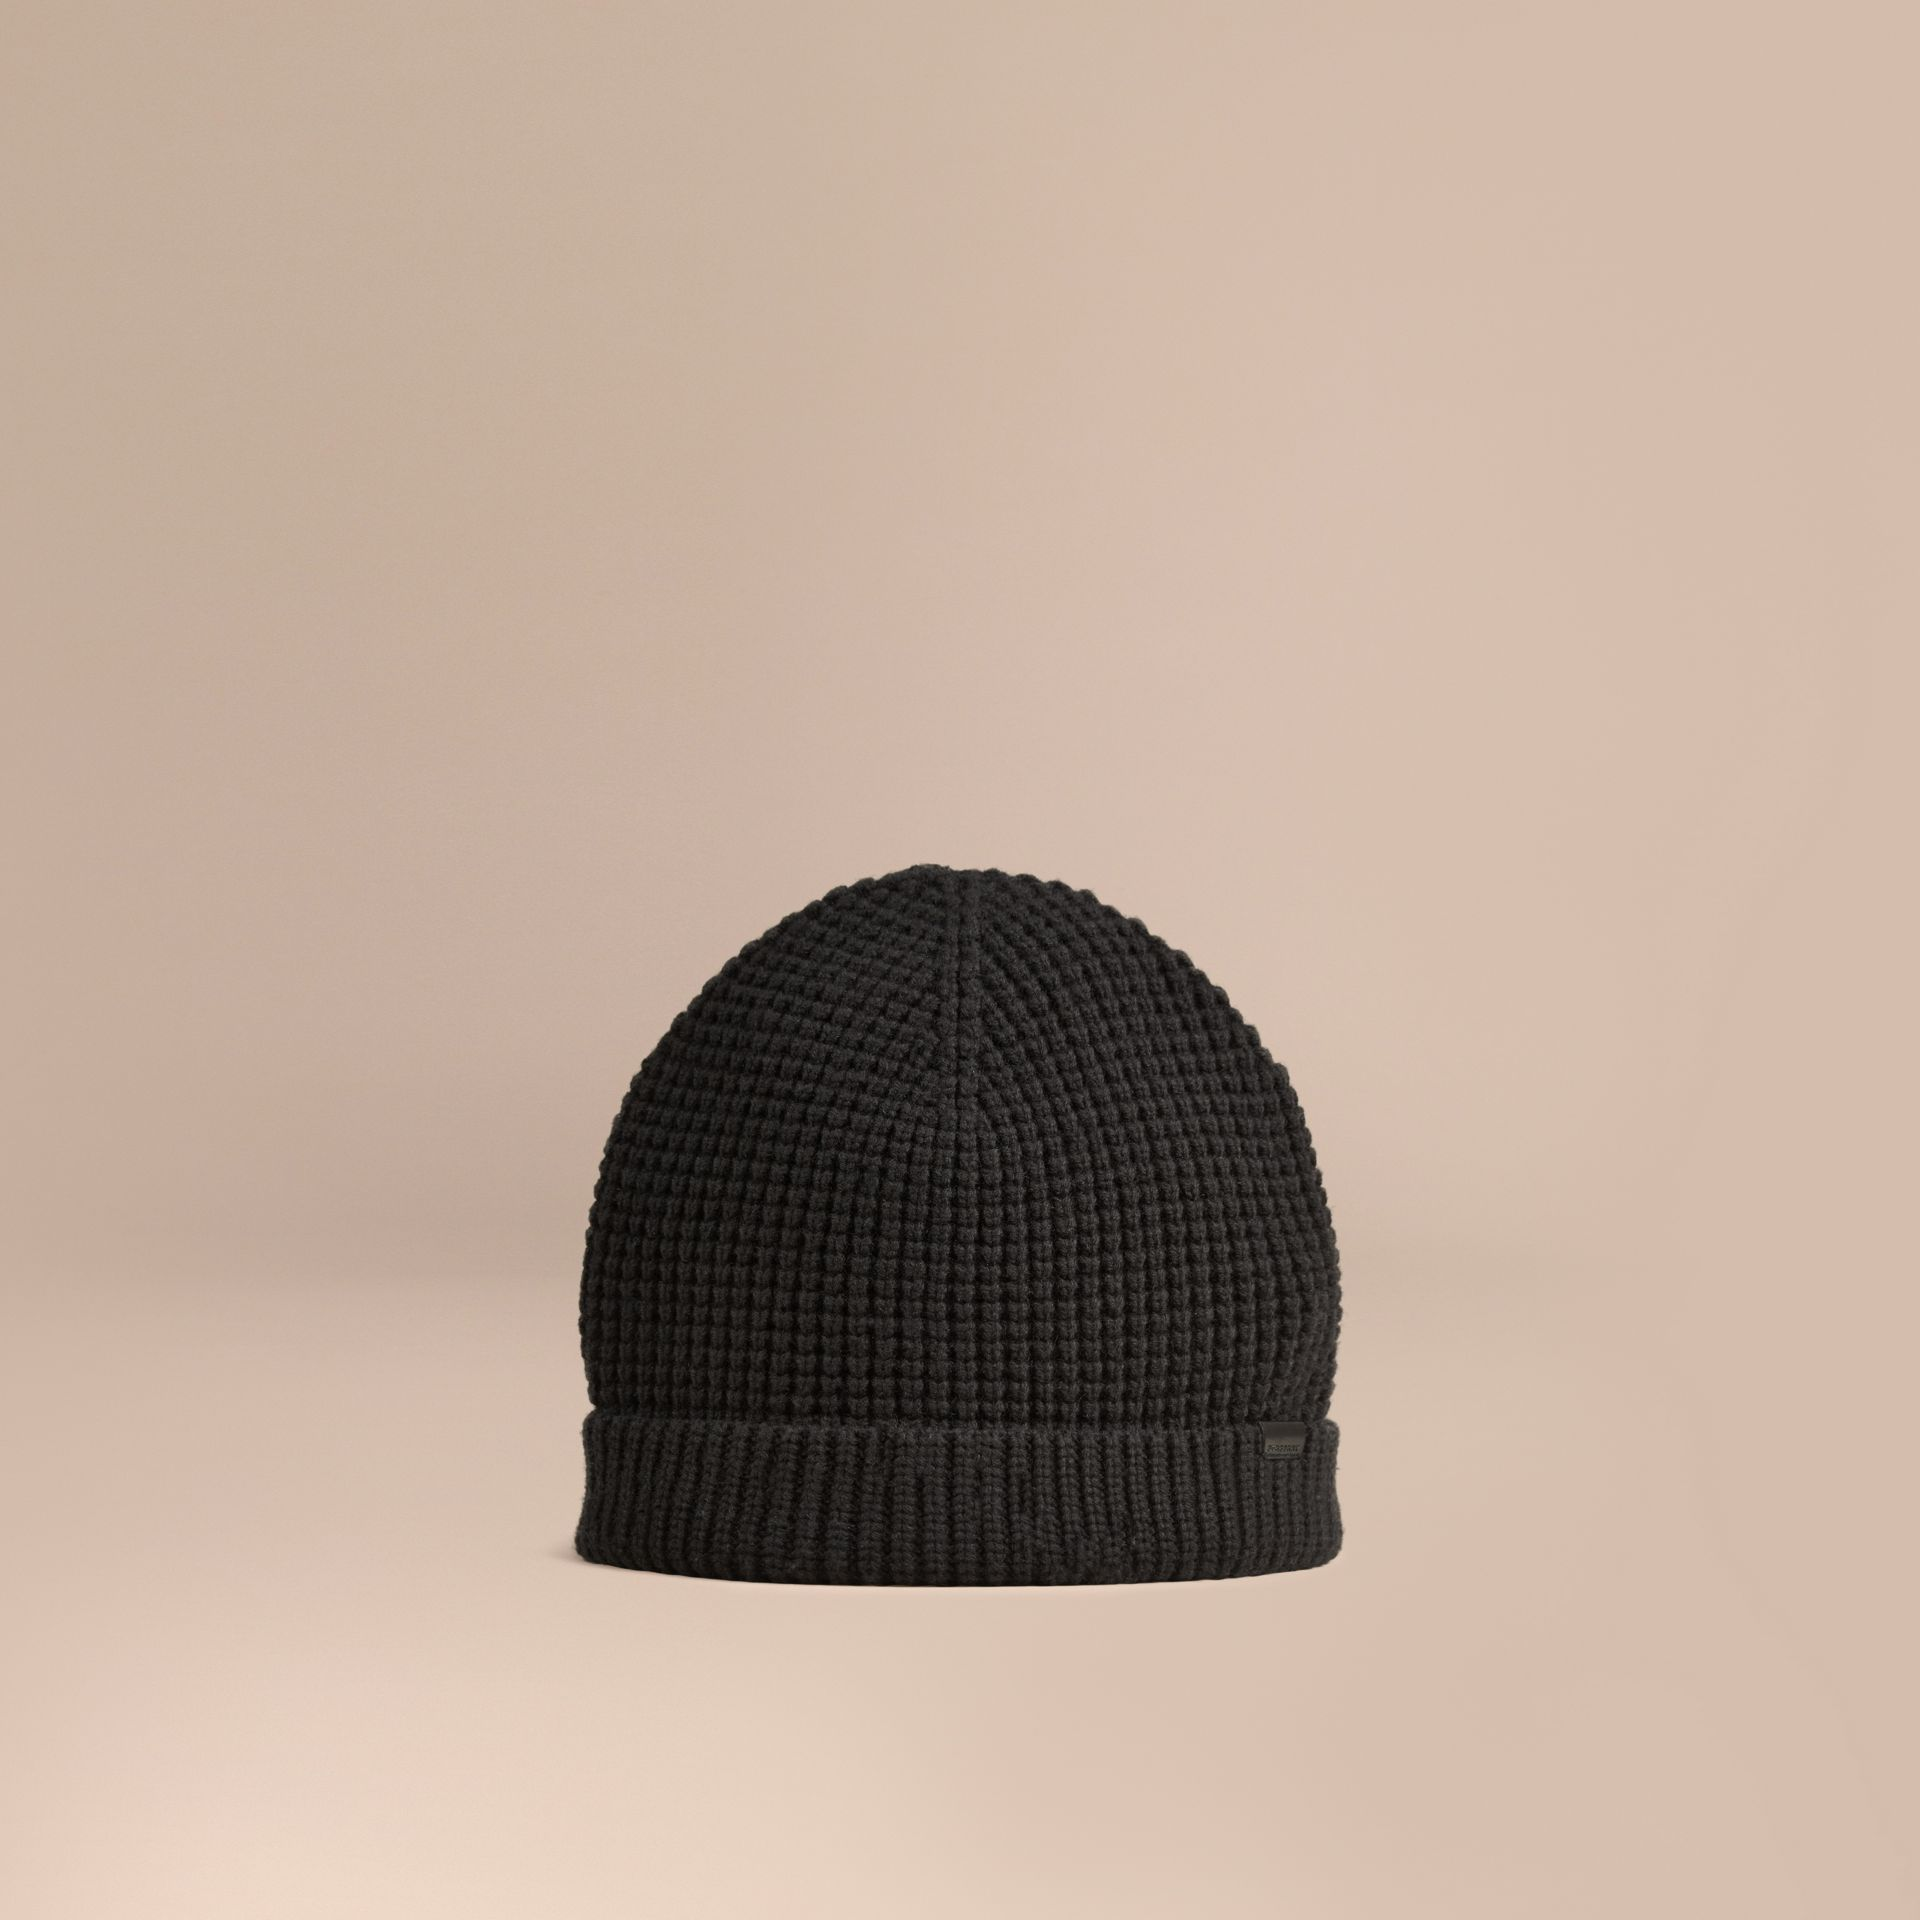 Cashmere Blend Waffle Knit Beanie in Black - Men | Burberry - gallery image 1